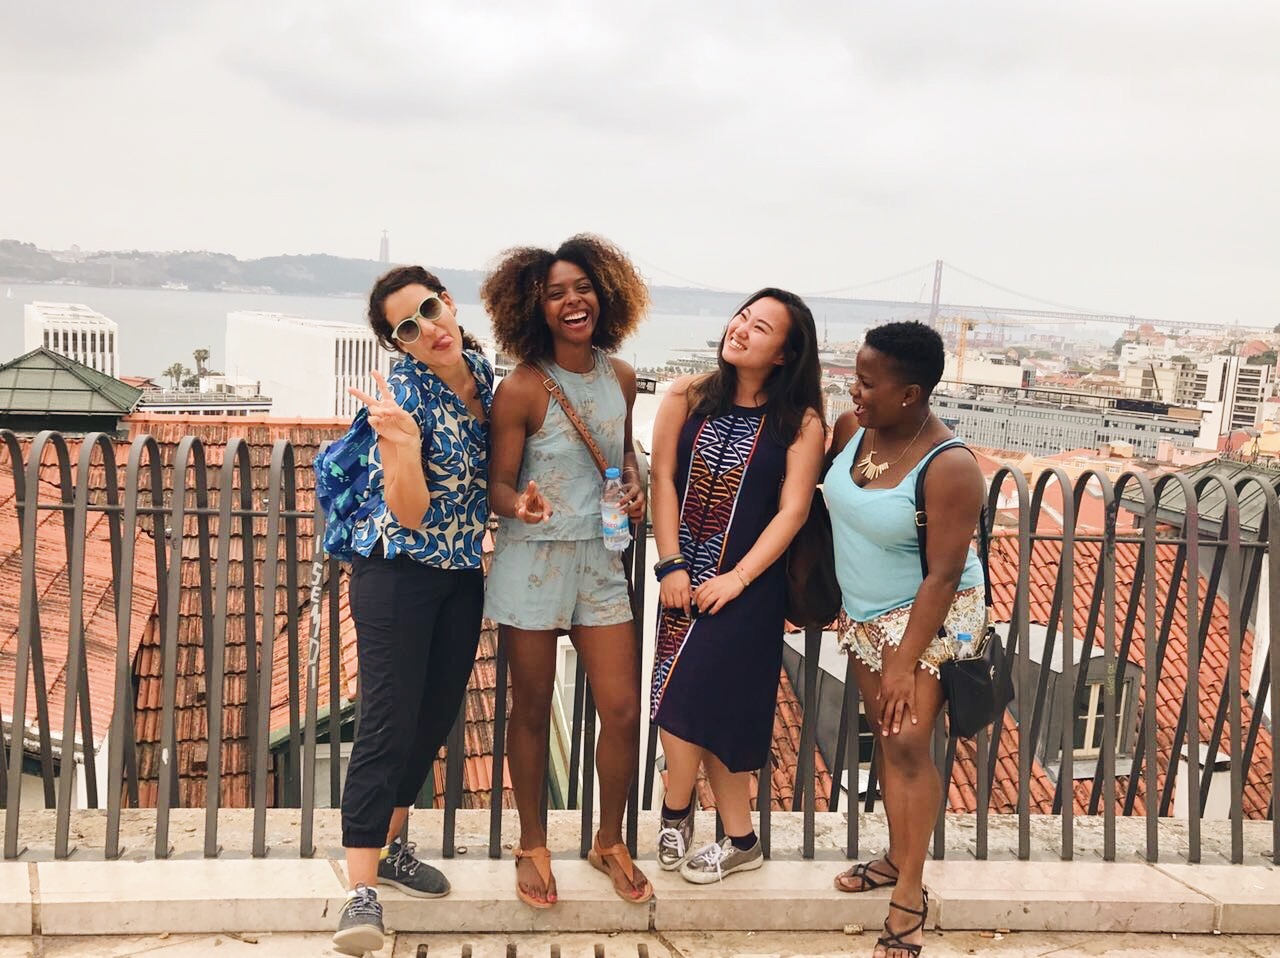 My travel crew and I in Lisbon. You would never guess that half of us just met an hour before this picture was taken!